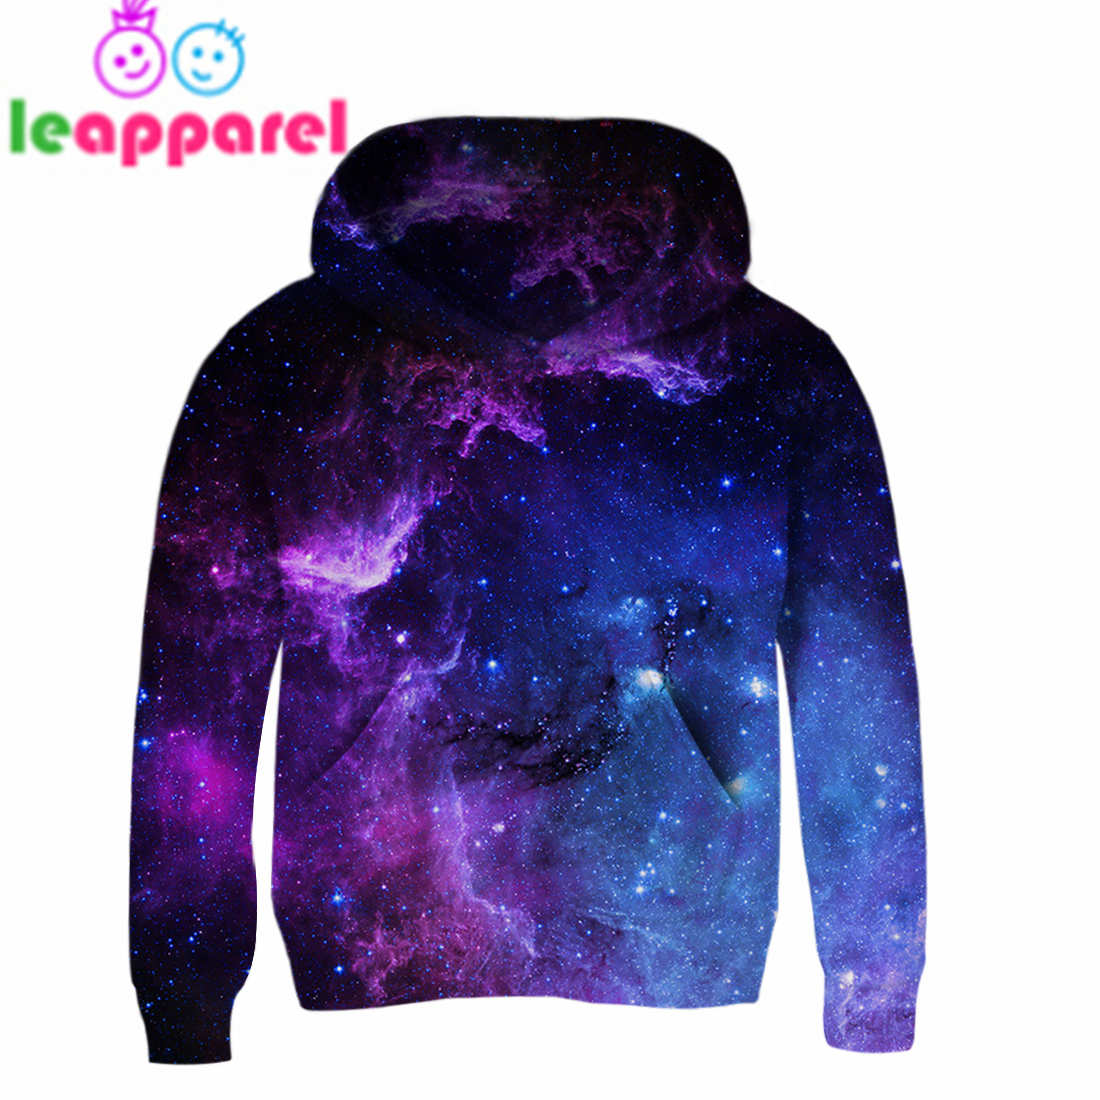 3T~13T Girls Hoodies Boys Hoodies 2019 Space Galaxy 3D Hooded Coat Outwear Jackets Baby Girls Boys Clothes 3-14Y